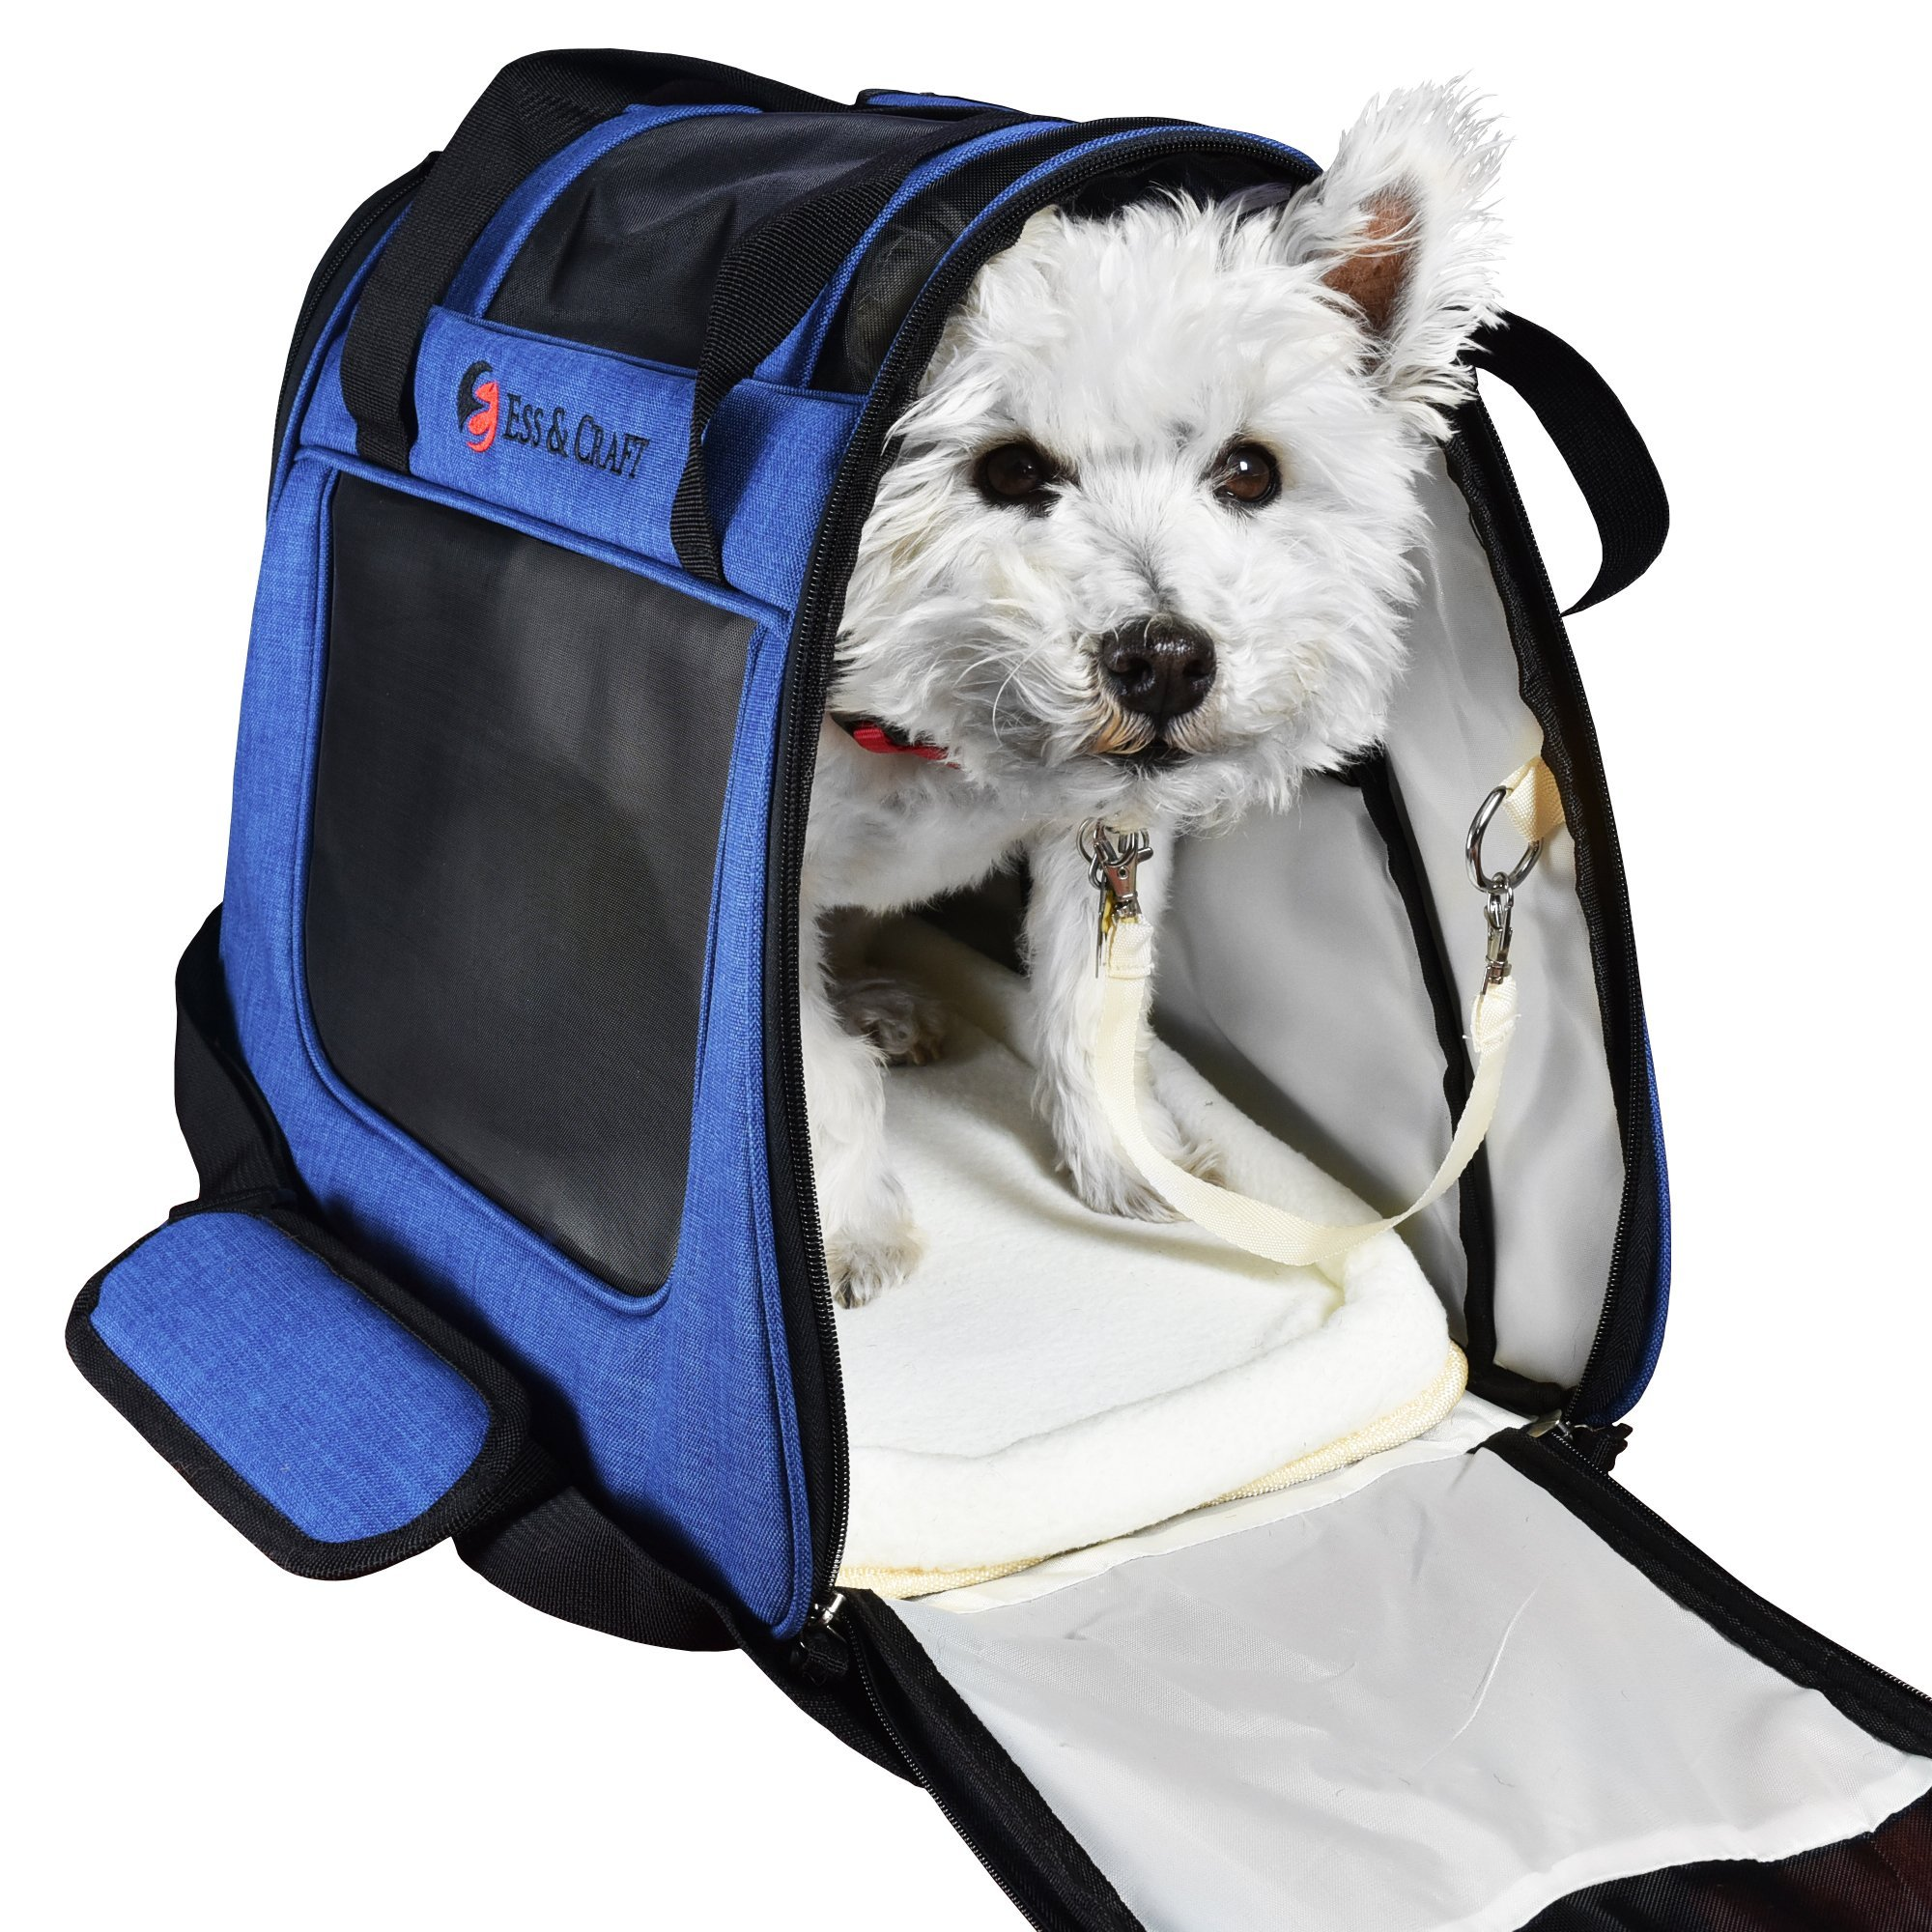 Pet Carrier For Small Cats and Dogs | Airline Approved | Side Loading Travel Bag With Sturdy Bottom & Fleece Bed | Ventilated Pouch With Top Comfy Handle & Zipper Locks | For Dogs, Cats, & Small Pets by E Ess & Craft